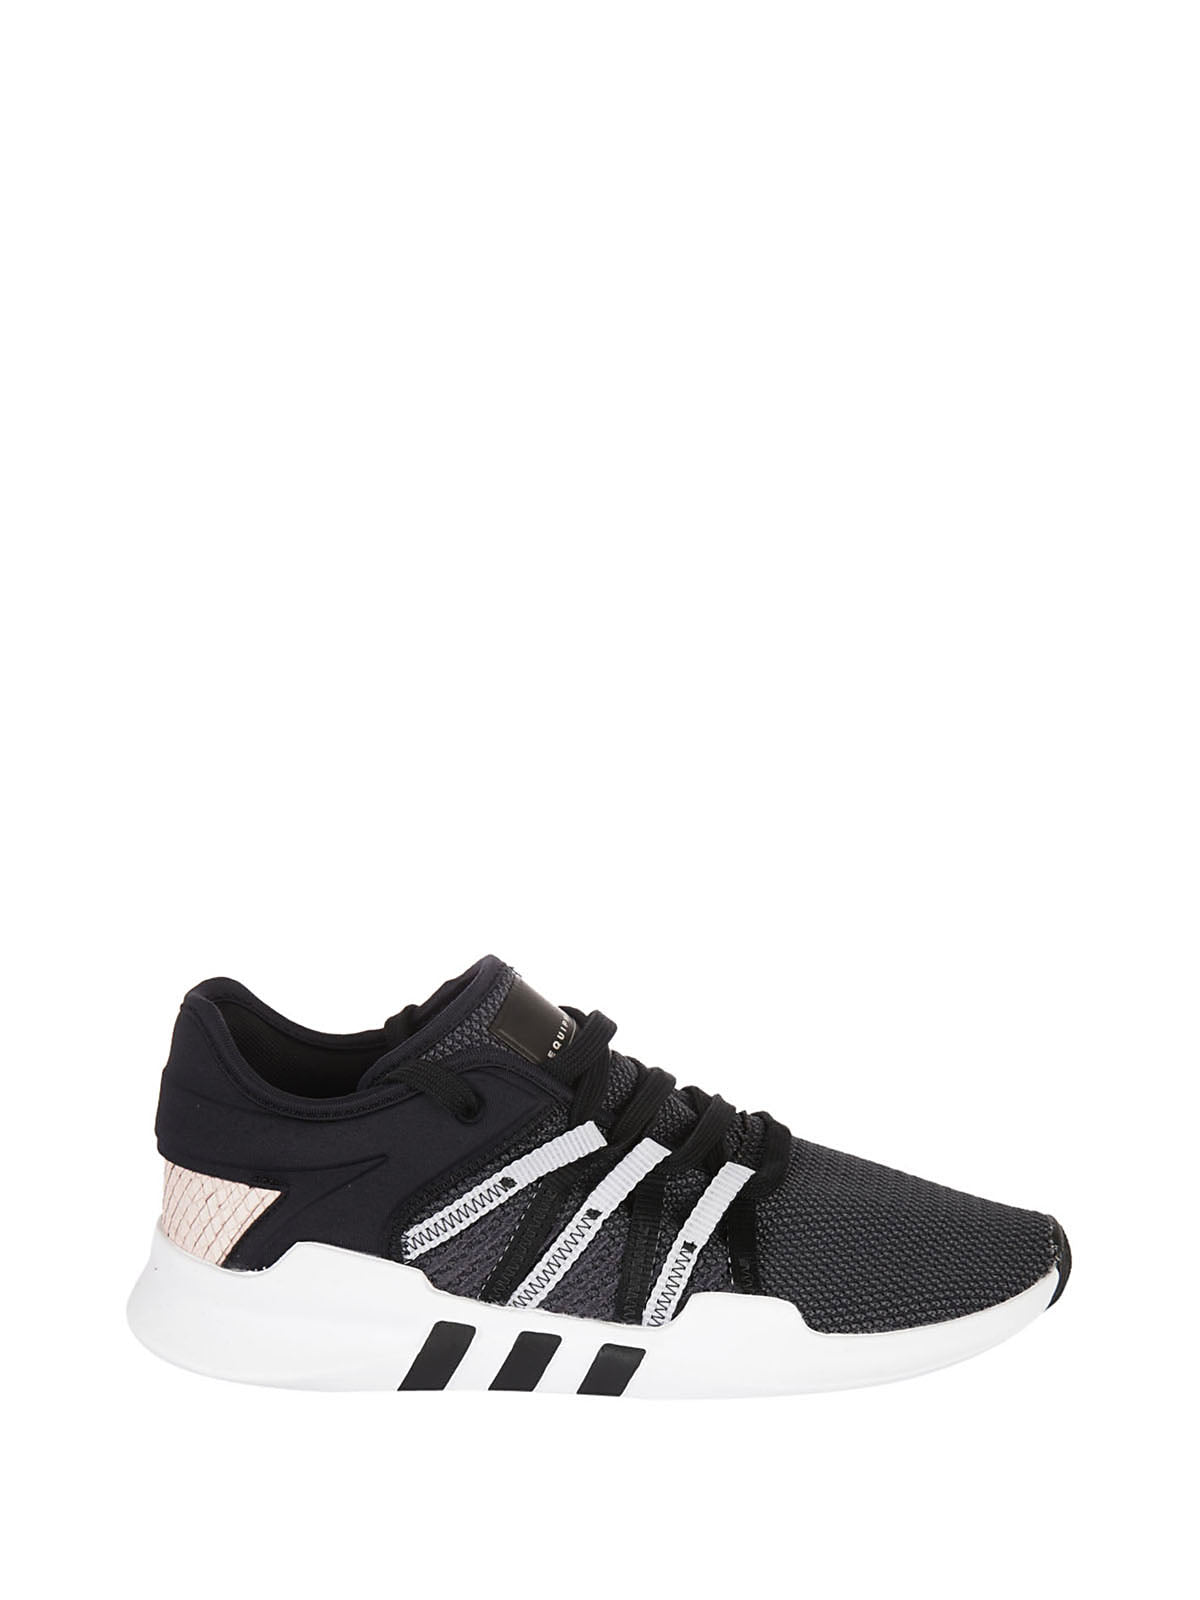 ADIDAS ORIGINALS EQT ADV RACING SNEAKERS